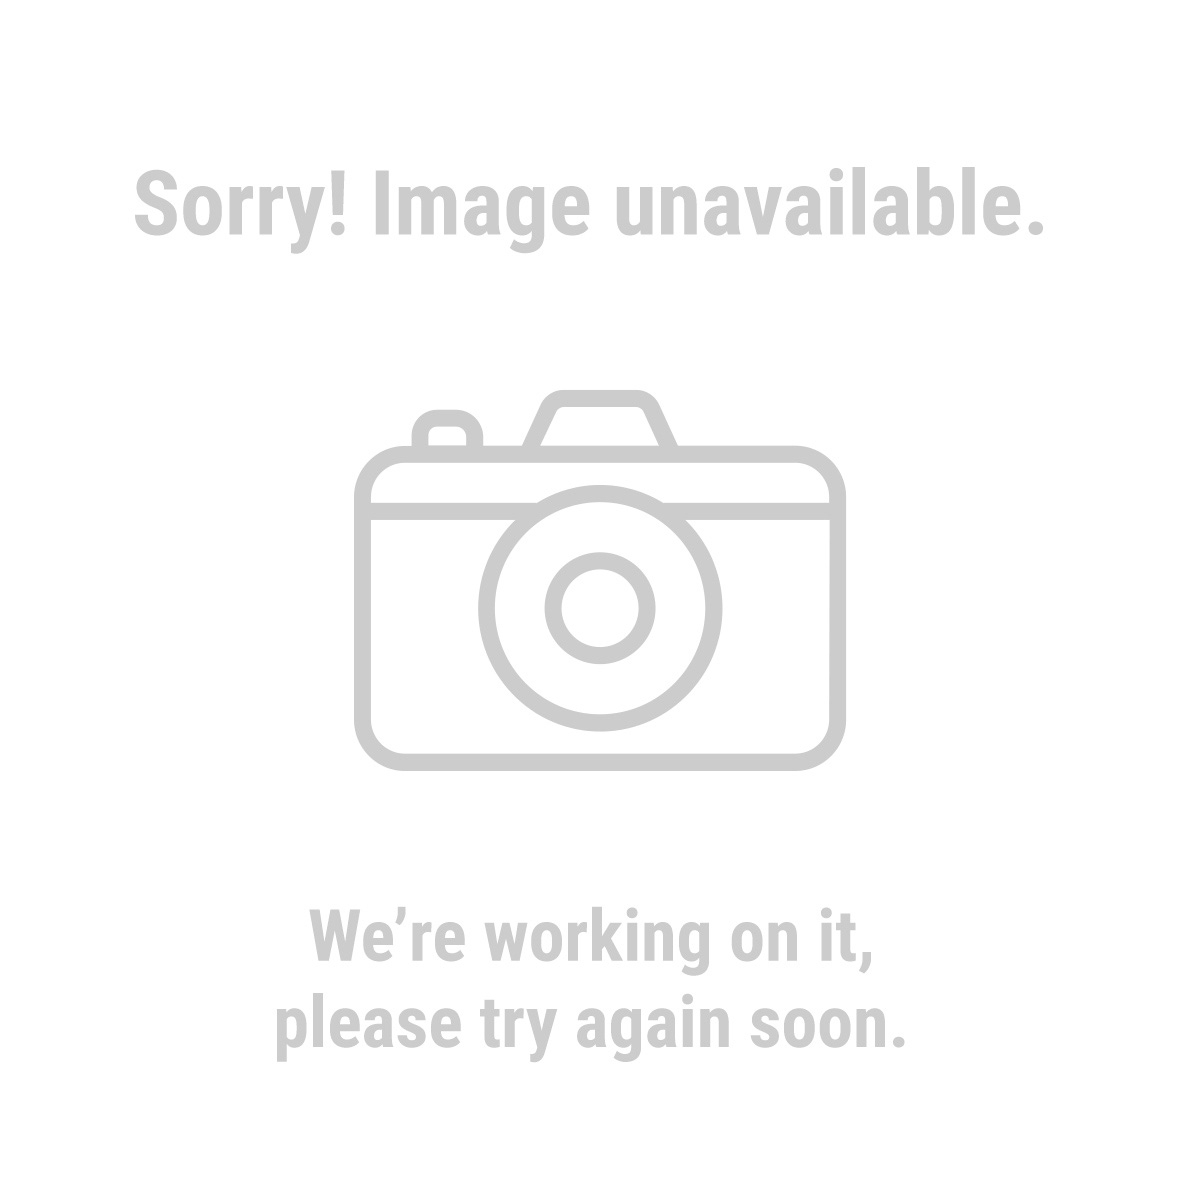 Haul-Master 69646 1000 Lb. Steel Loading Ramps, Set of Two